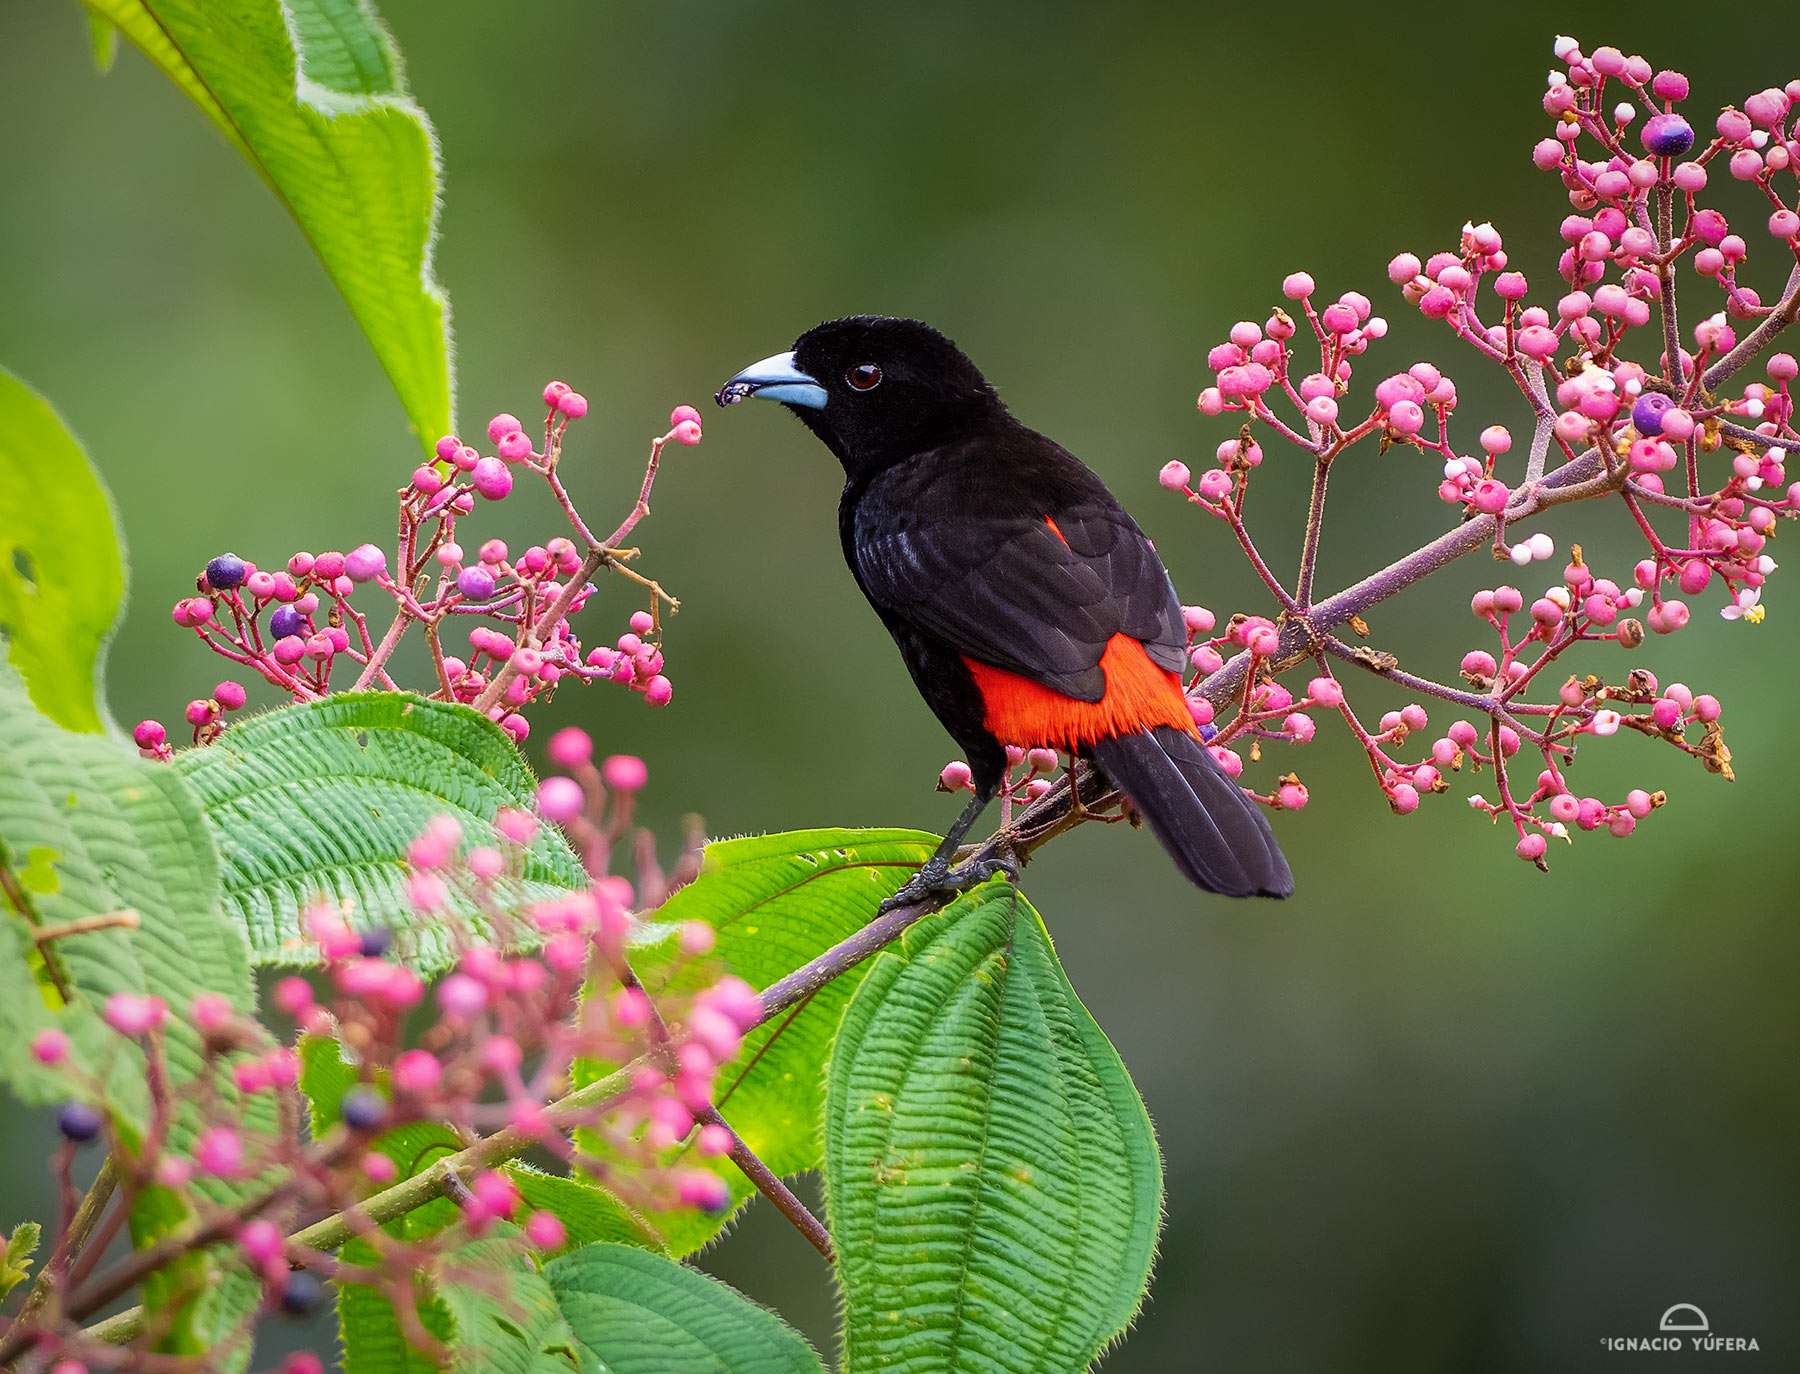 Scarlet-rumped Tanager (Ramphocelus passerinii), male feeding on berries, Costa Rica